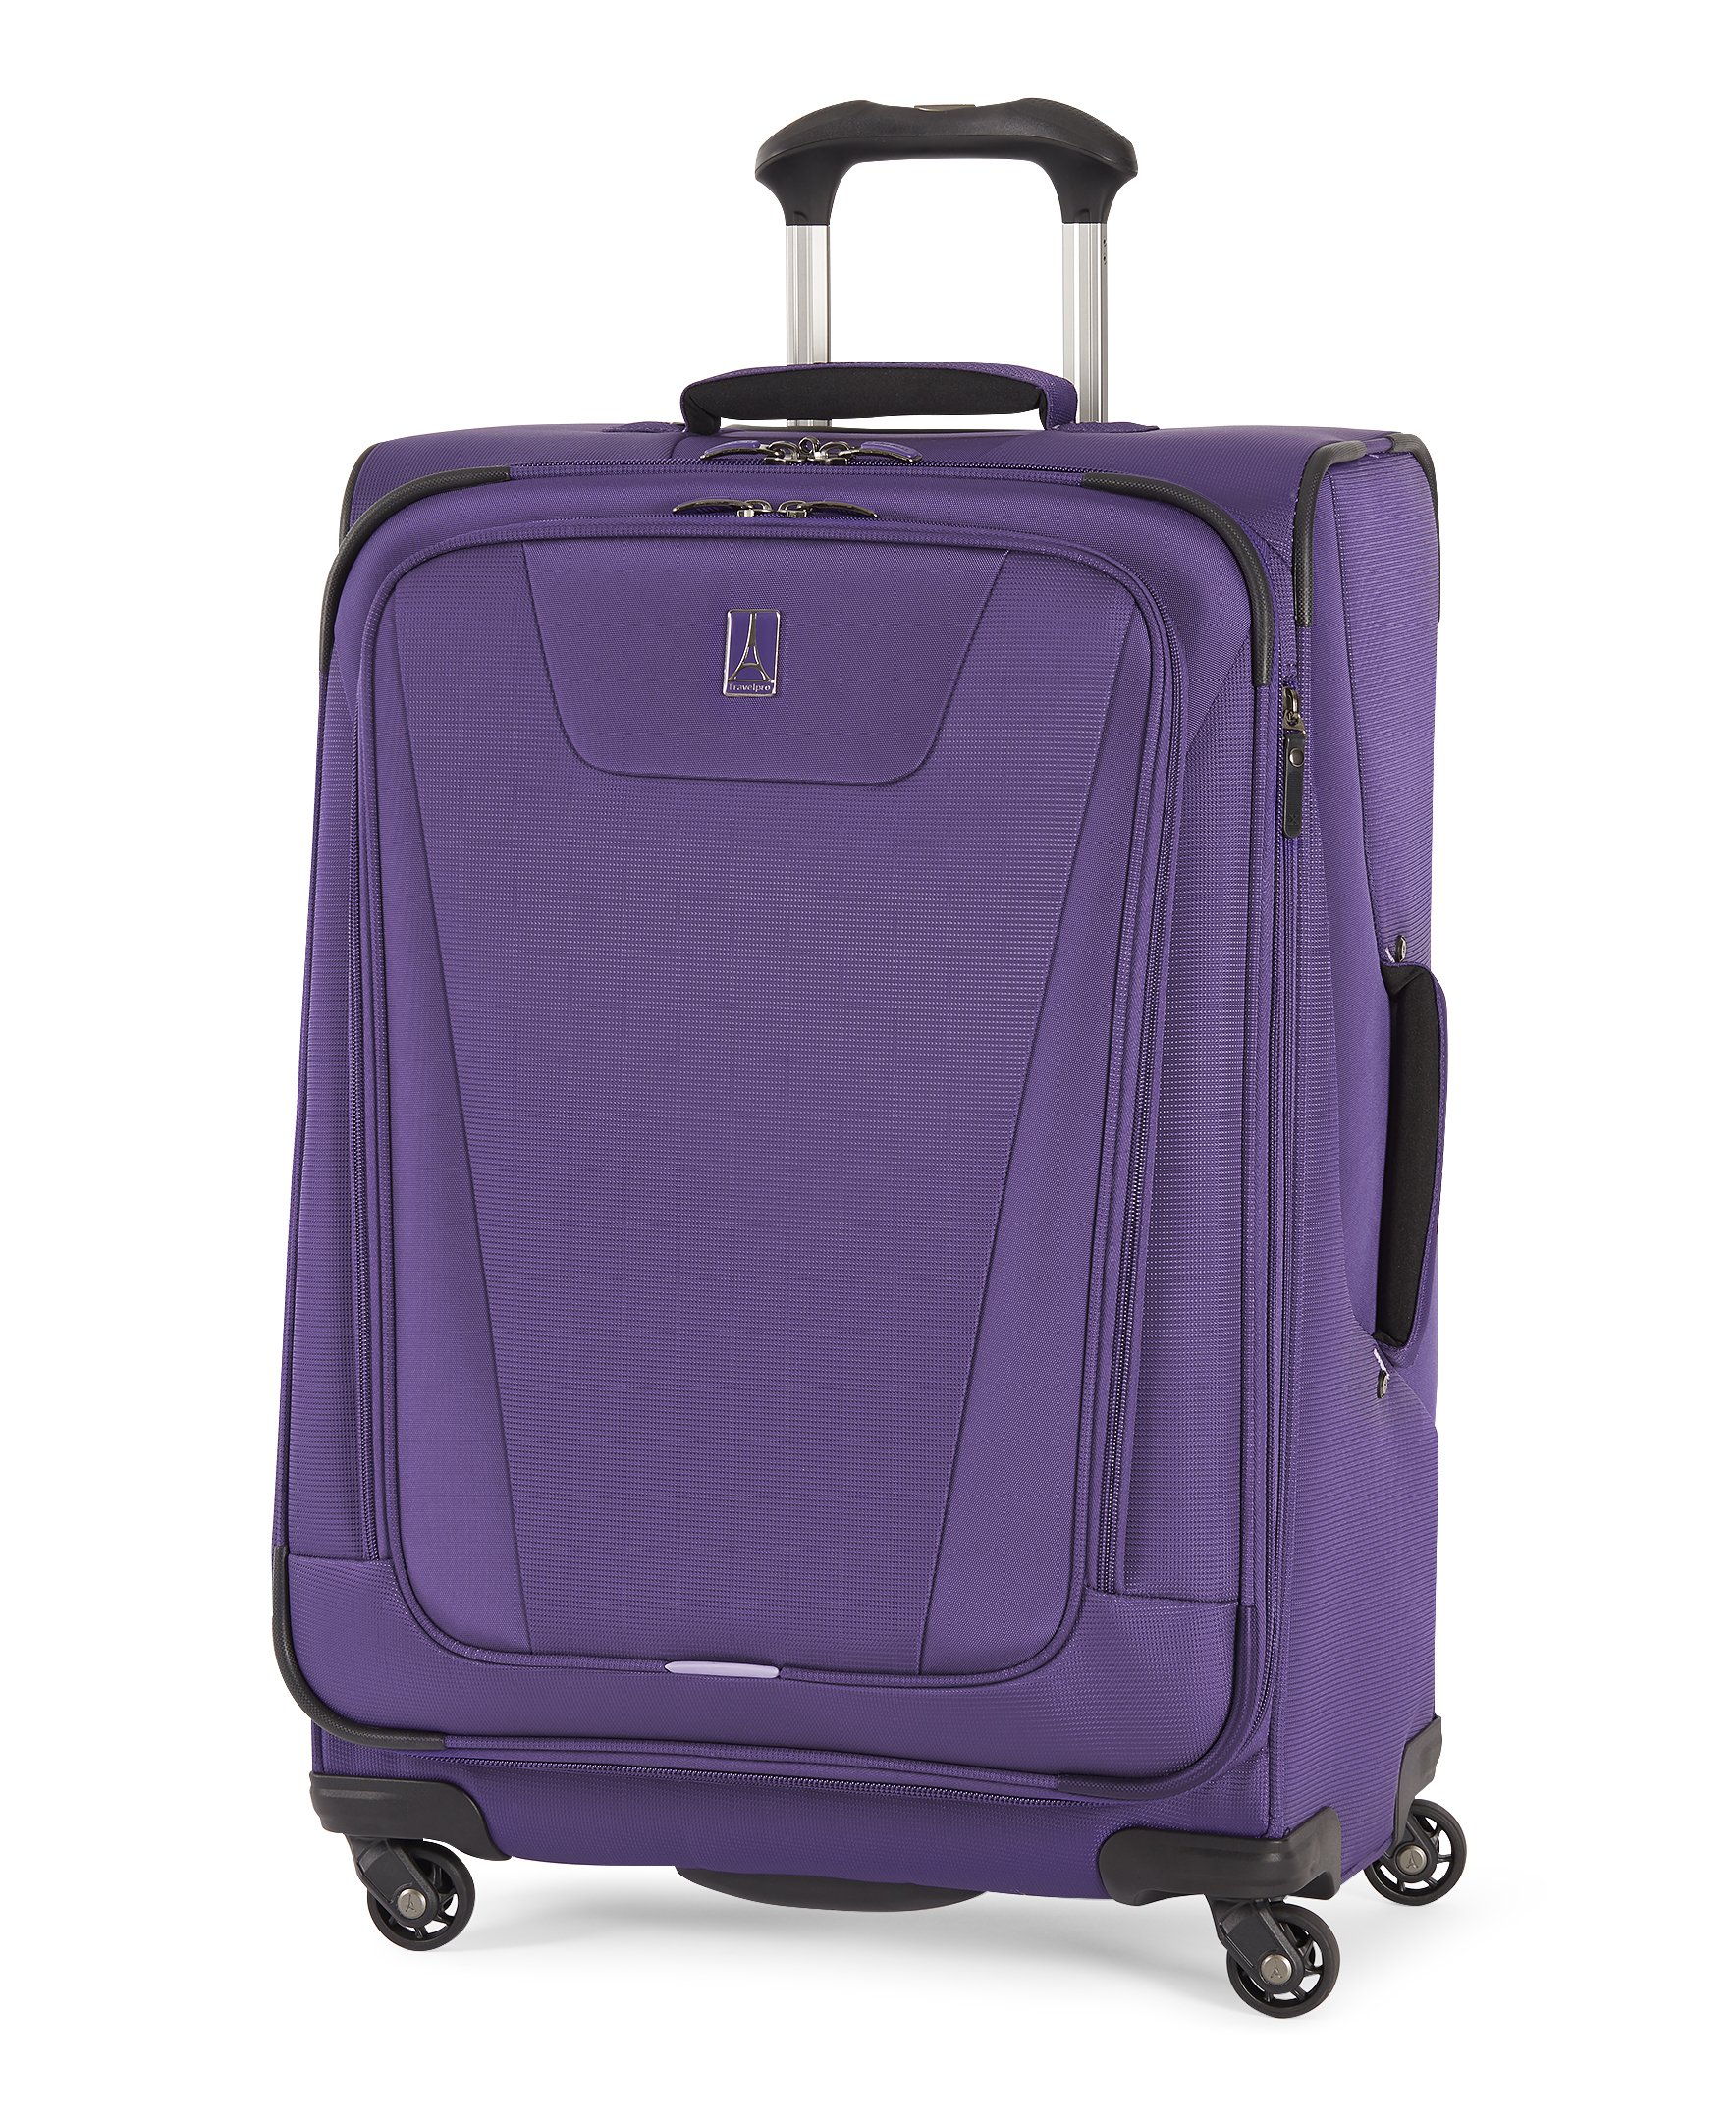 Travelpro Maxlite 4 25'' Expandable Spinner, Purple